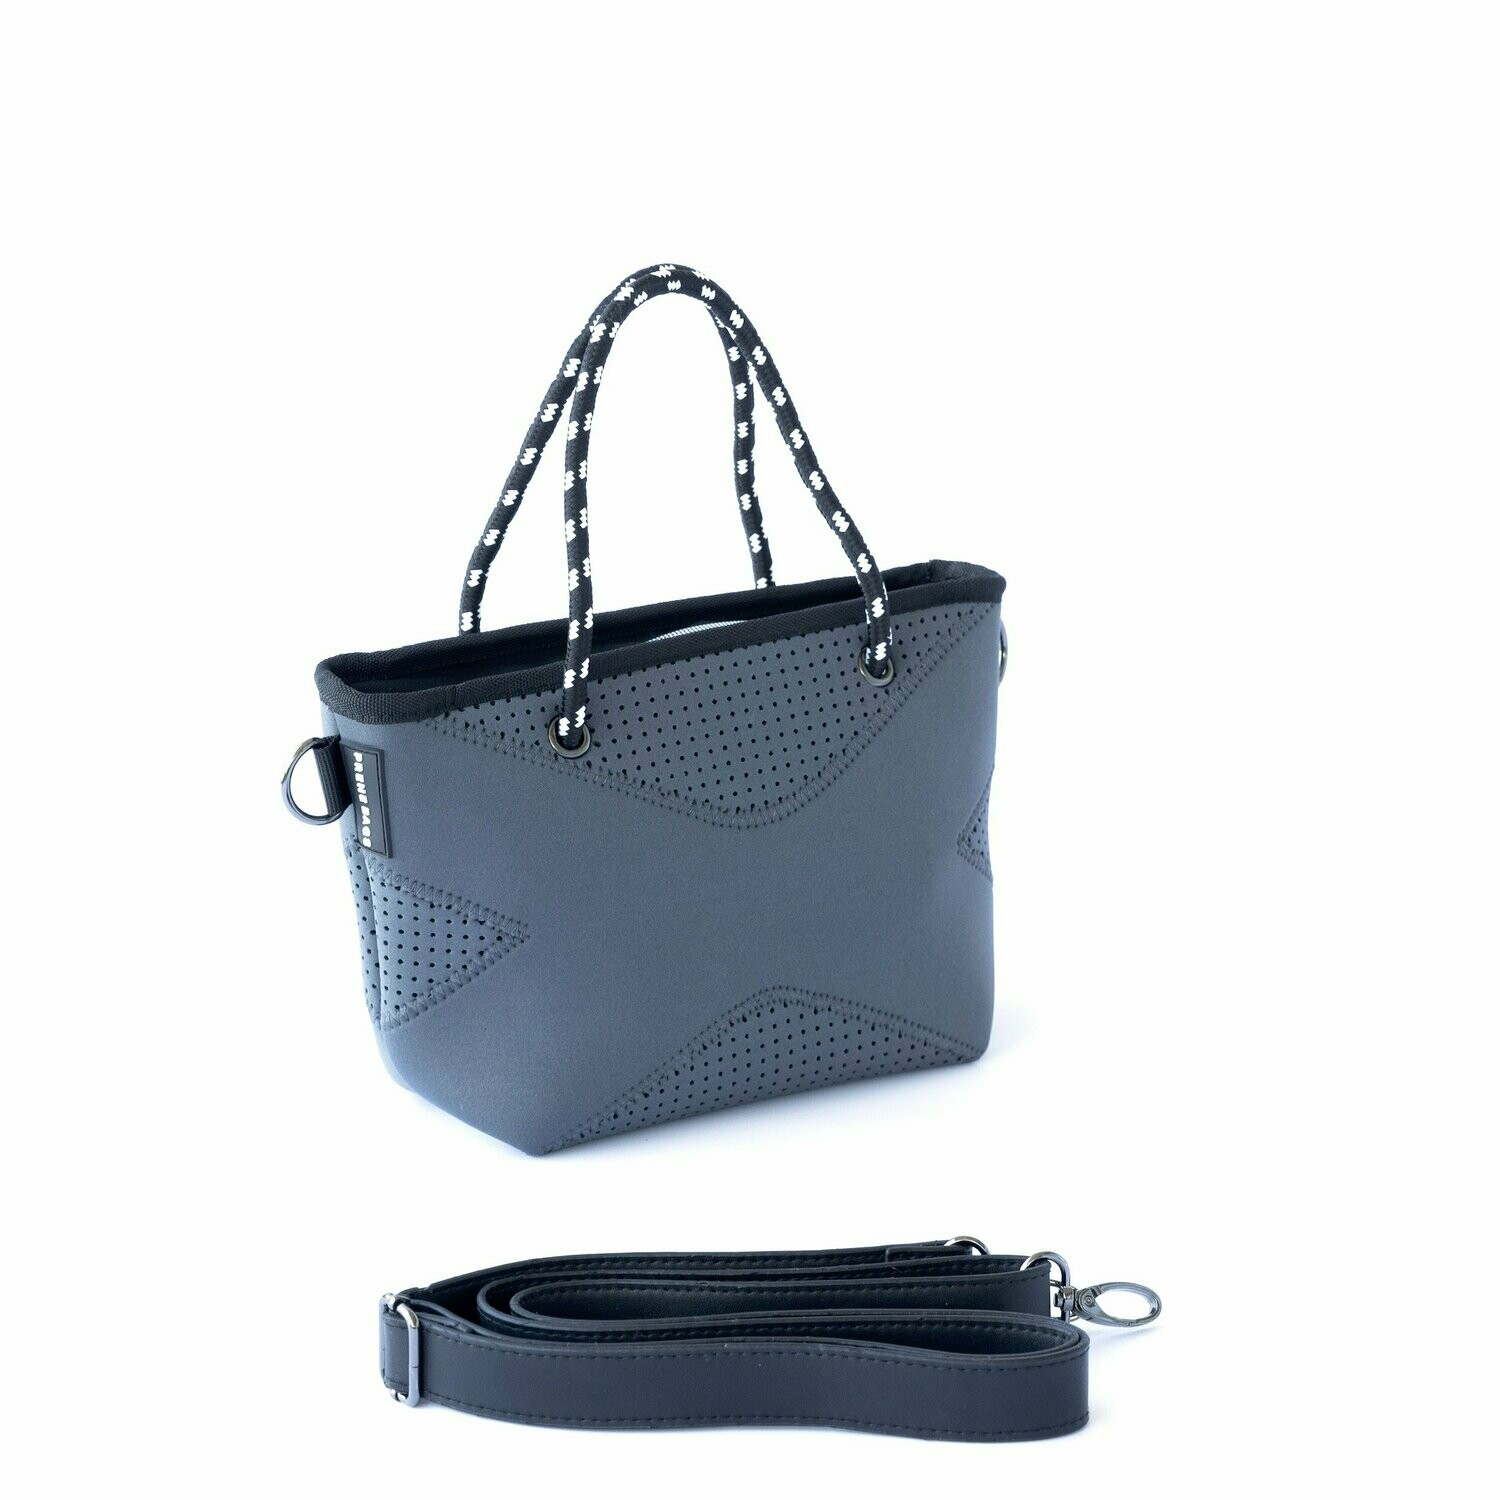 XXS The X Bag - Charcoal